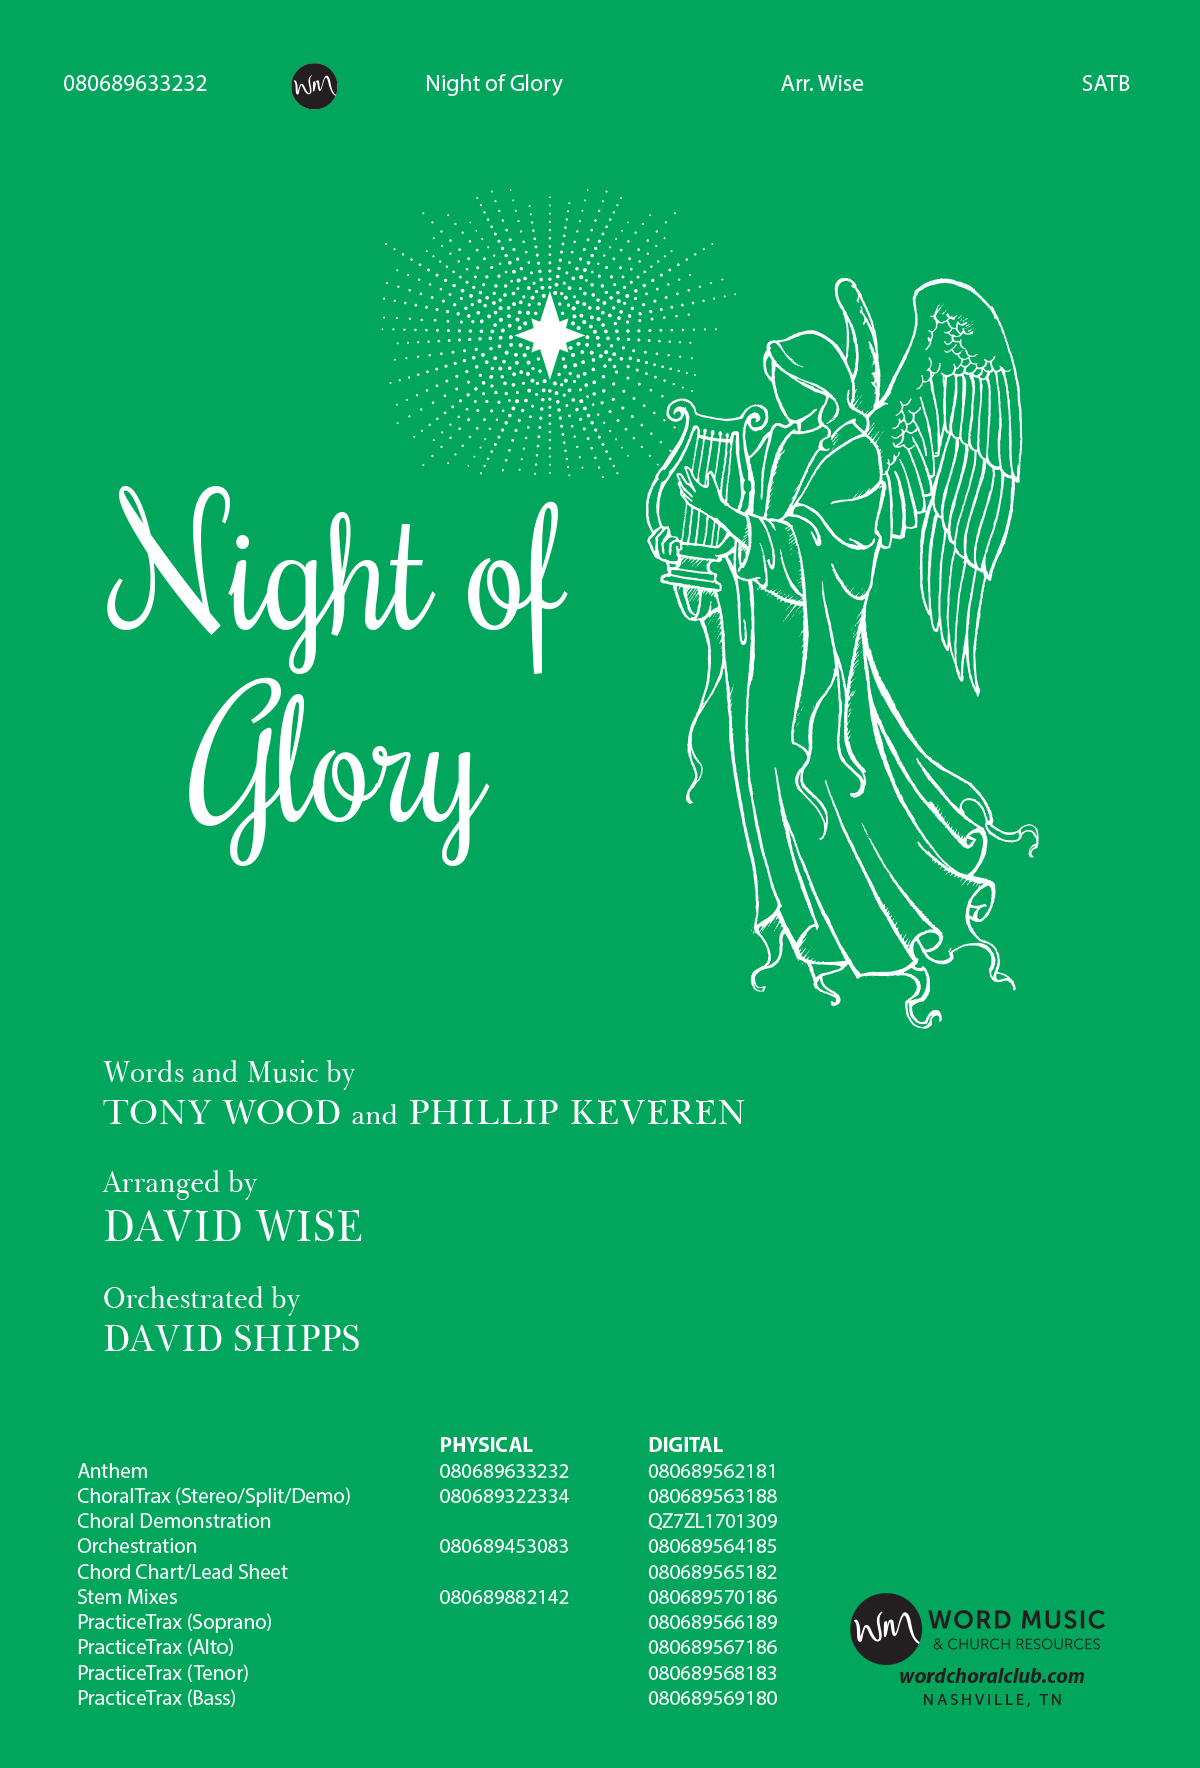 Night of Glory